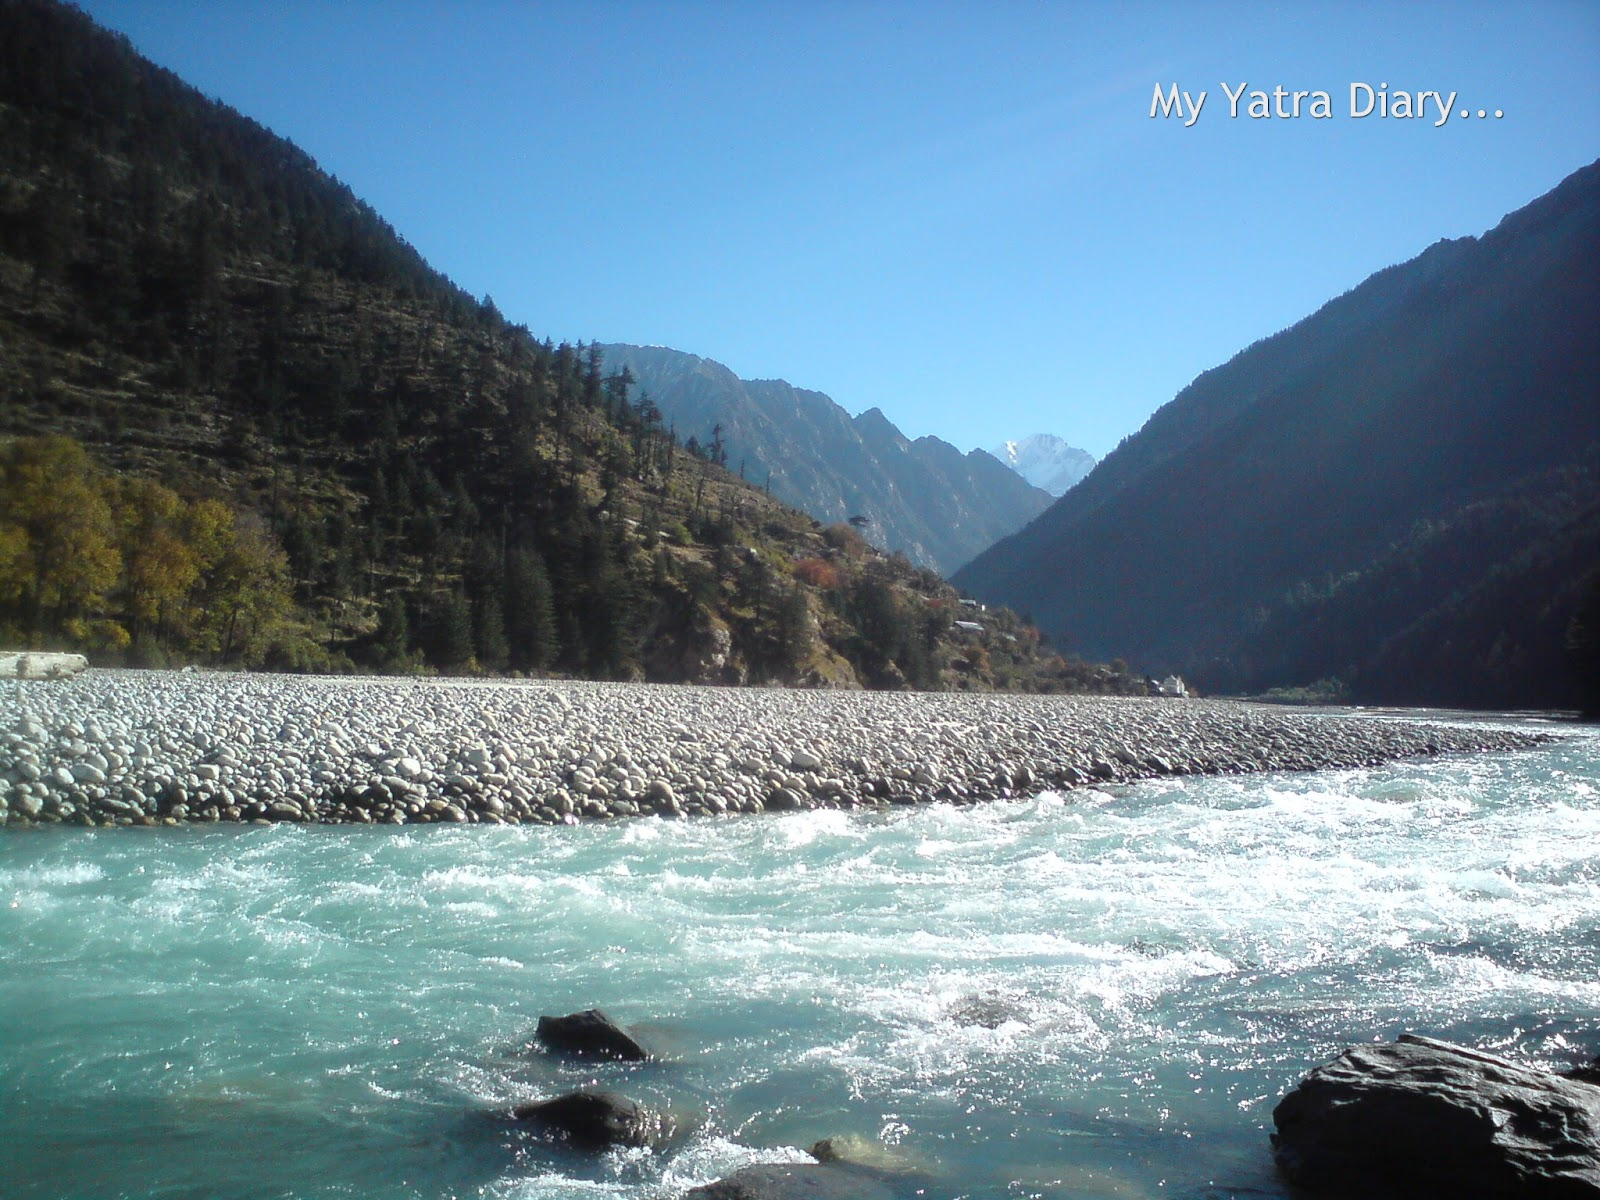 autobiography of river ganga Haridwarliveco give the information about birth of river ganga in india, mythological story birth of the river ganga, birth of ganga ji, haridwar ganga maa, river.